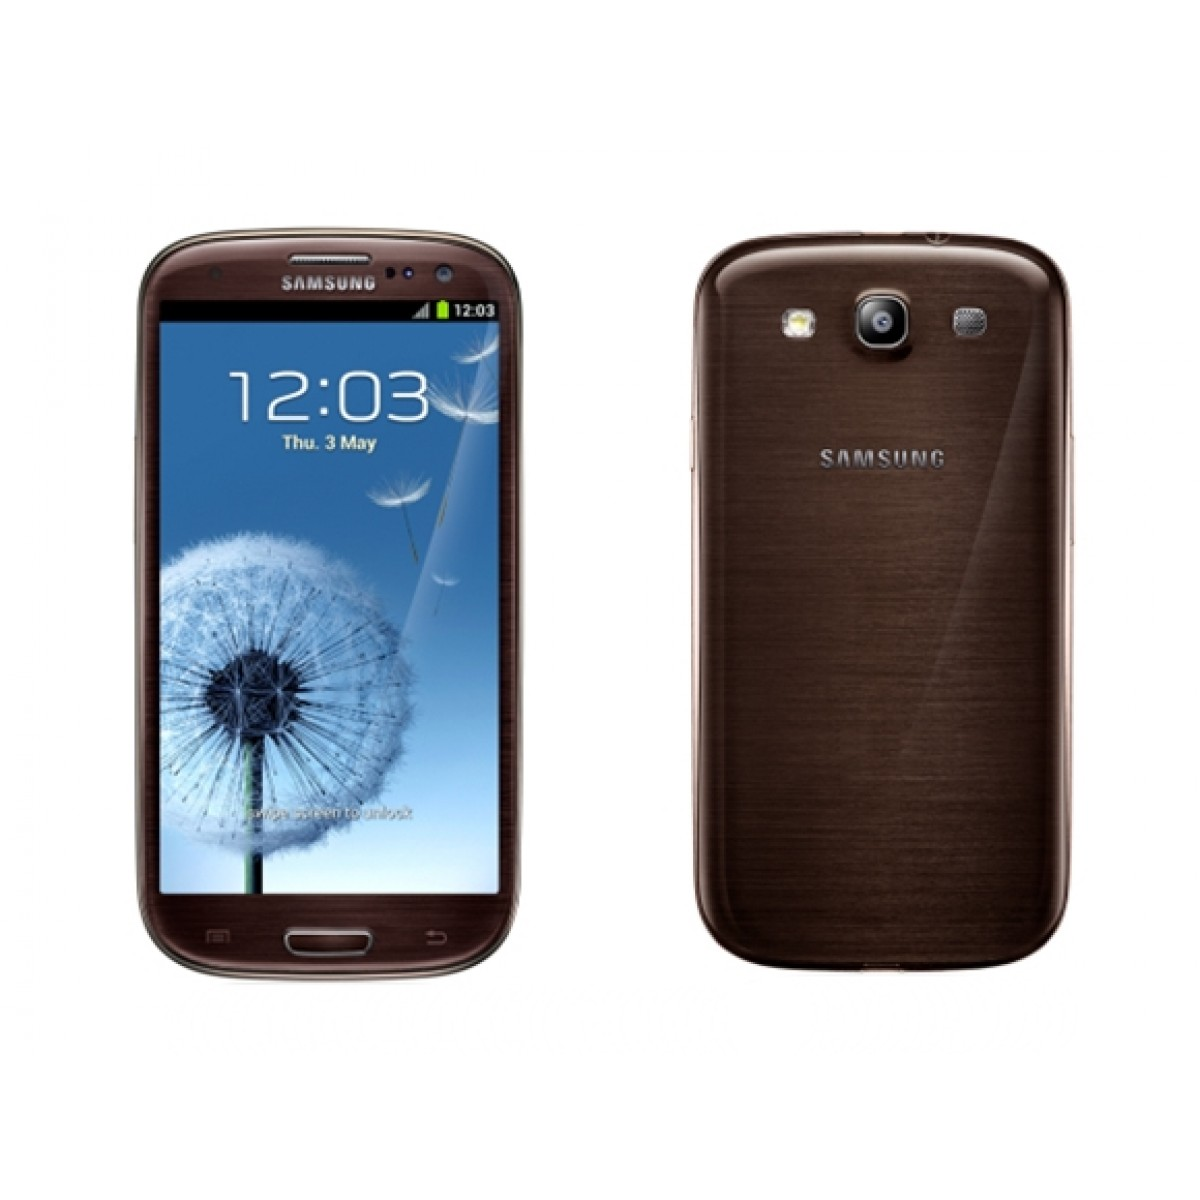 samsung galaxy s3 brown 16gb android 4g lte phone verizon excellent condition used cell. Black Bedroom Furniture Sets. Home Design Ideas